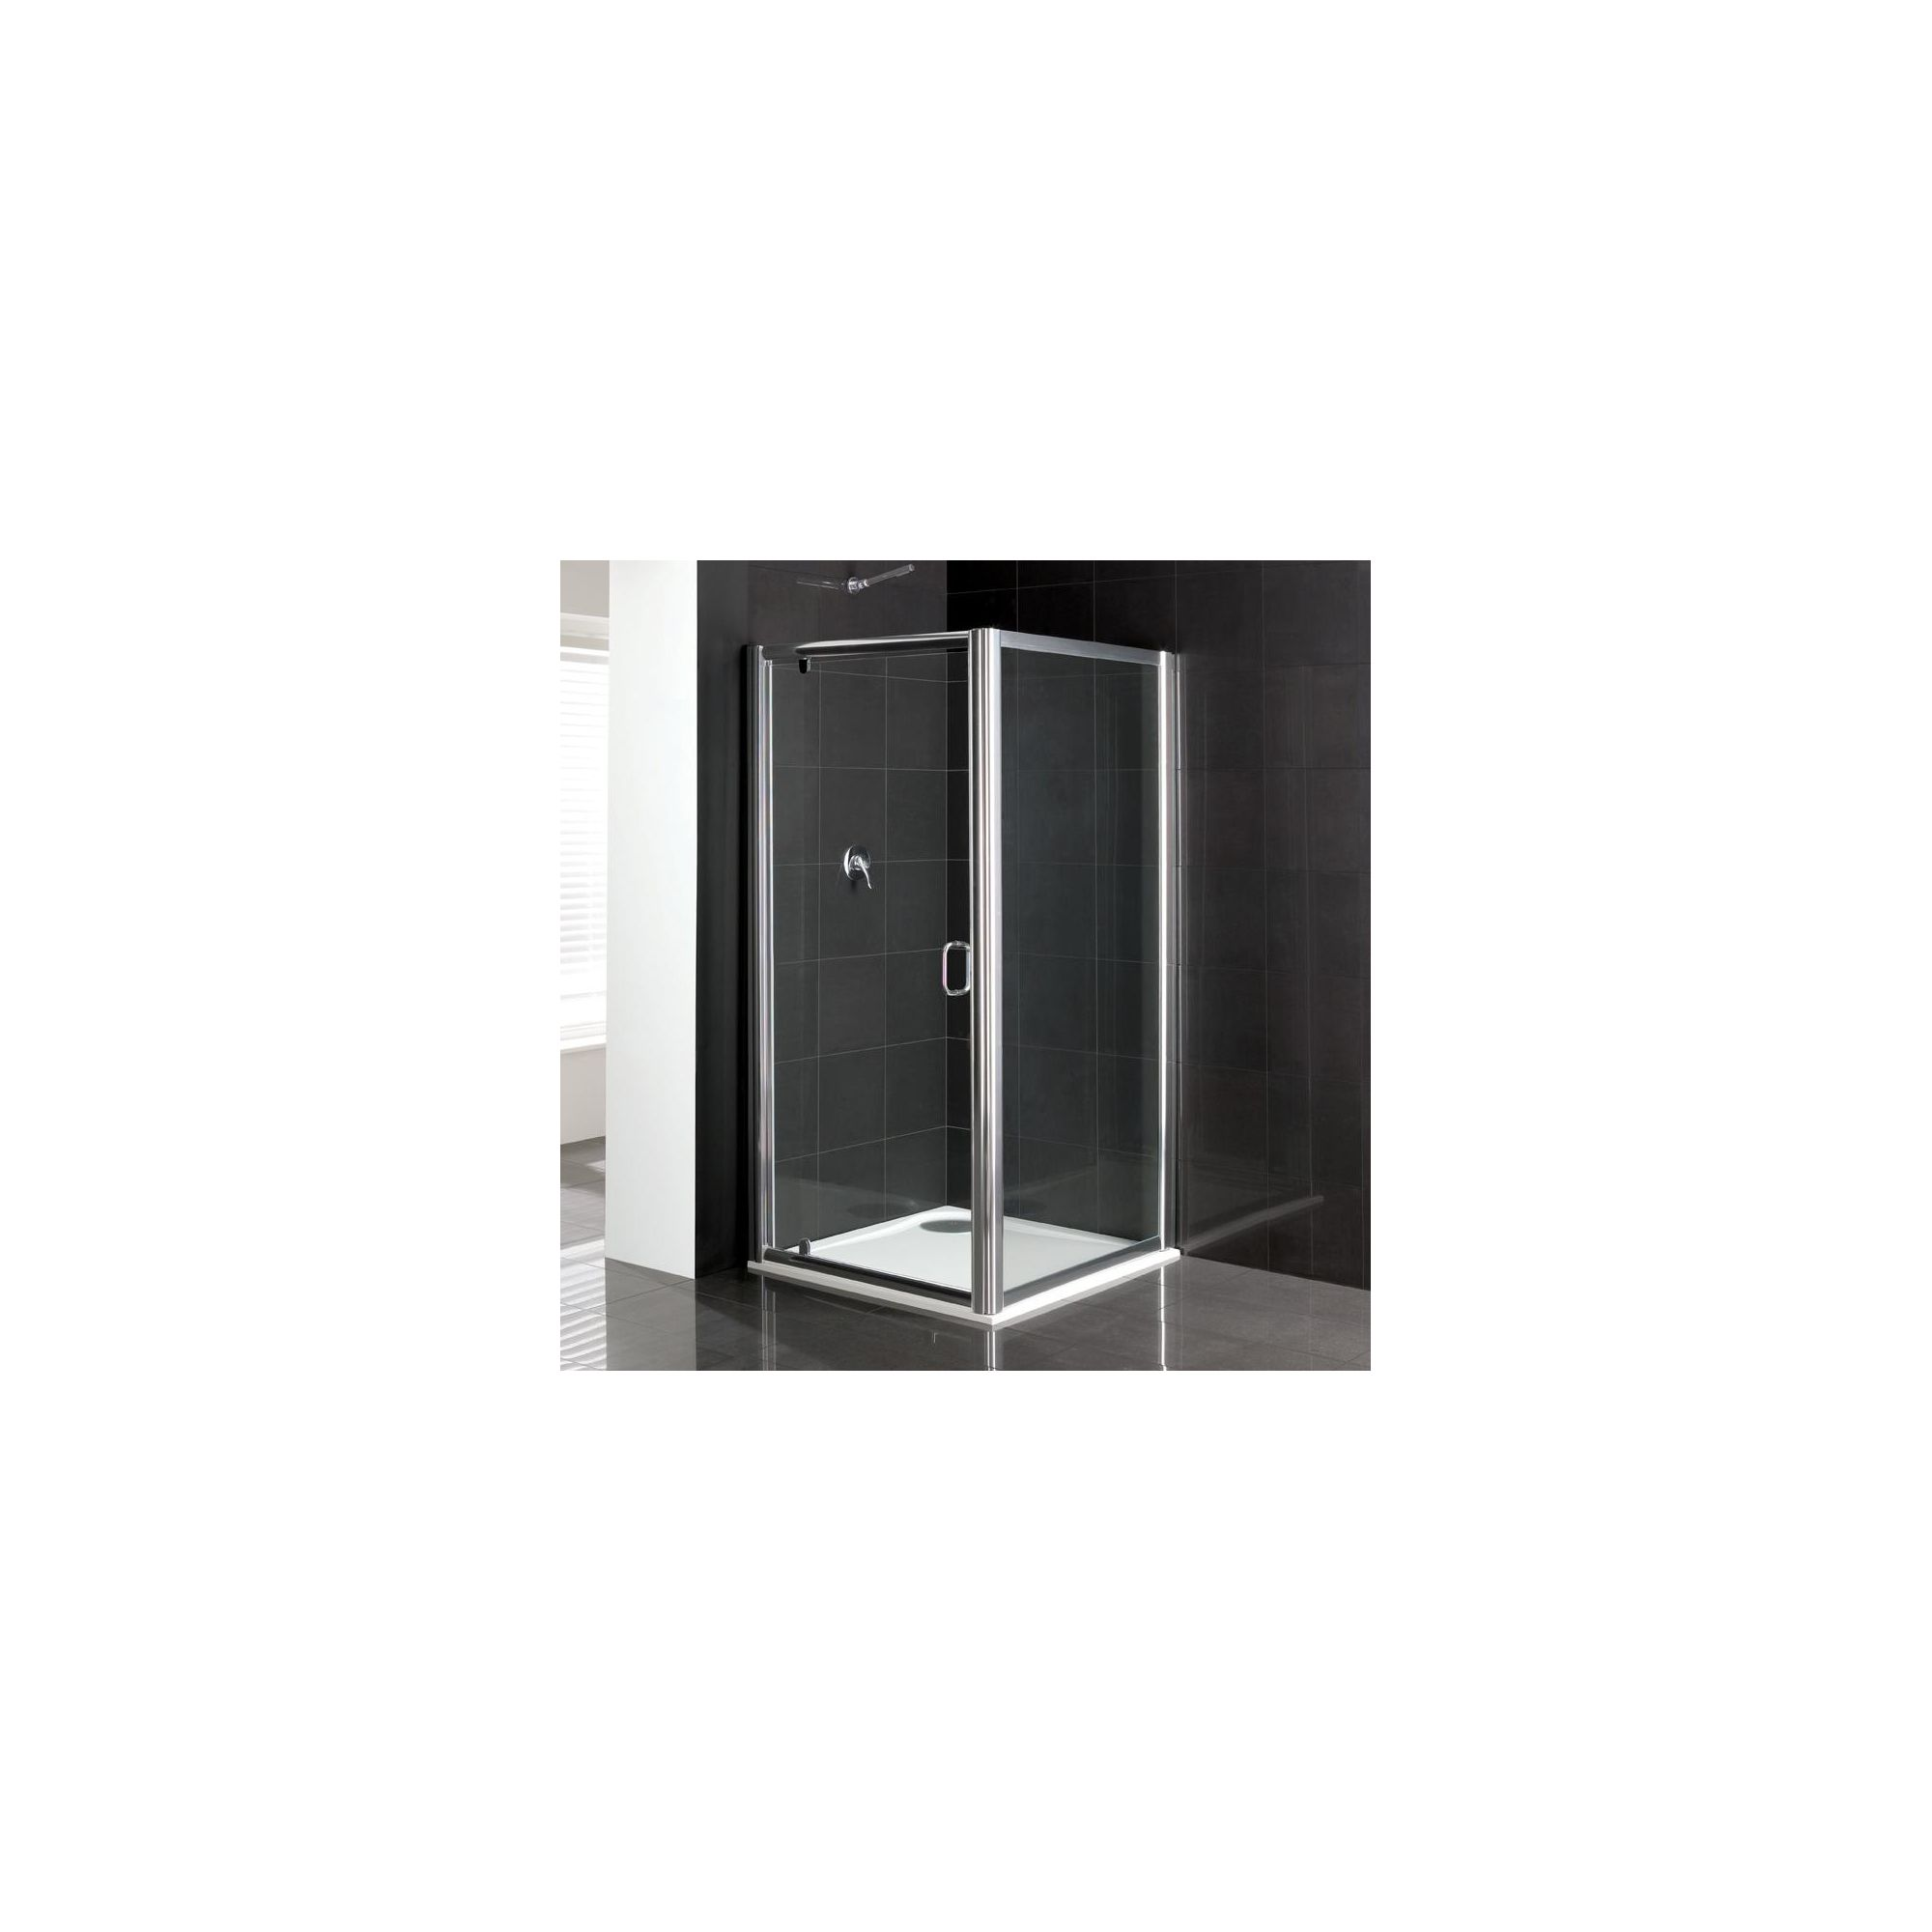 Duchy Elite Silver Pivot Door Shower Enclosure with Towel Rail, 900mm x 760mm, Standard Tray, 6mm Glass at Tesco Direct